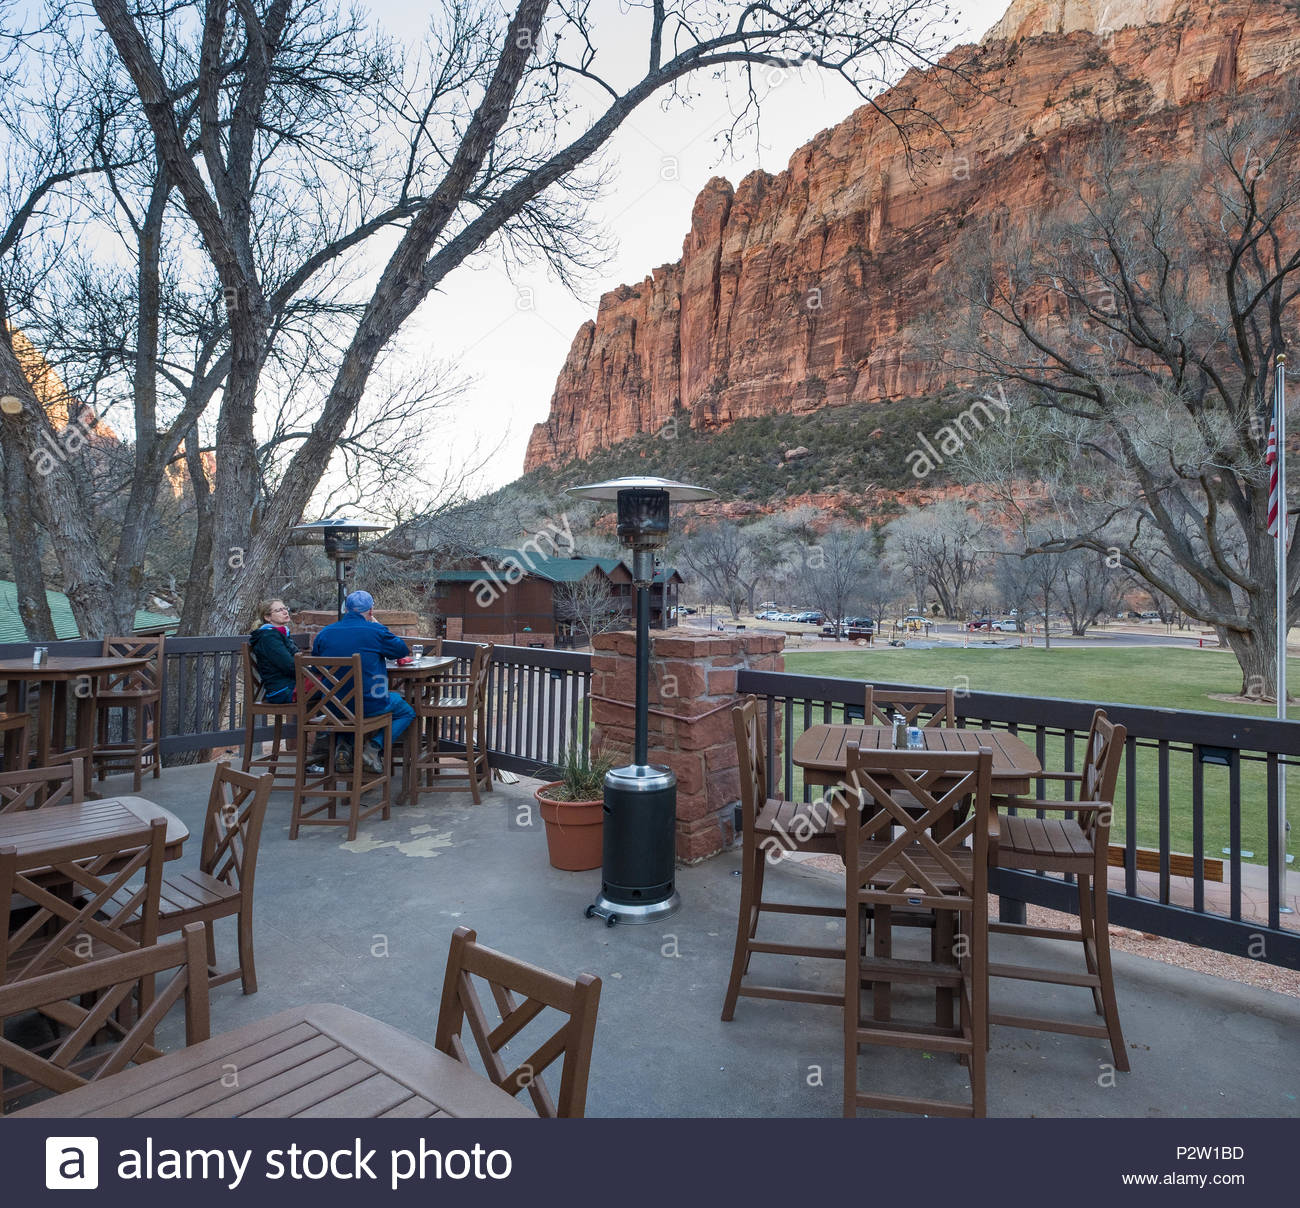 People sitting at tables on outside the Red Rock Grill, Zion National Park Lodge, Zion National Park, Washington County, Utah, USA - Stock Image